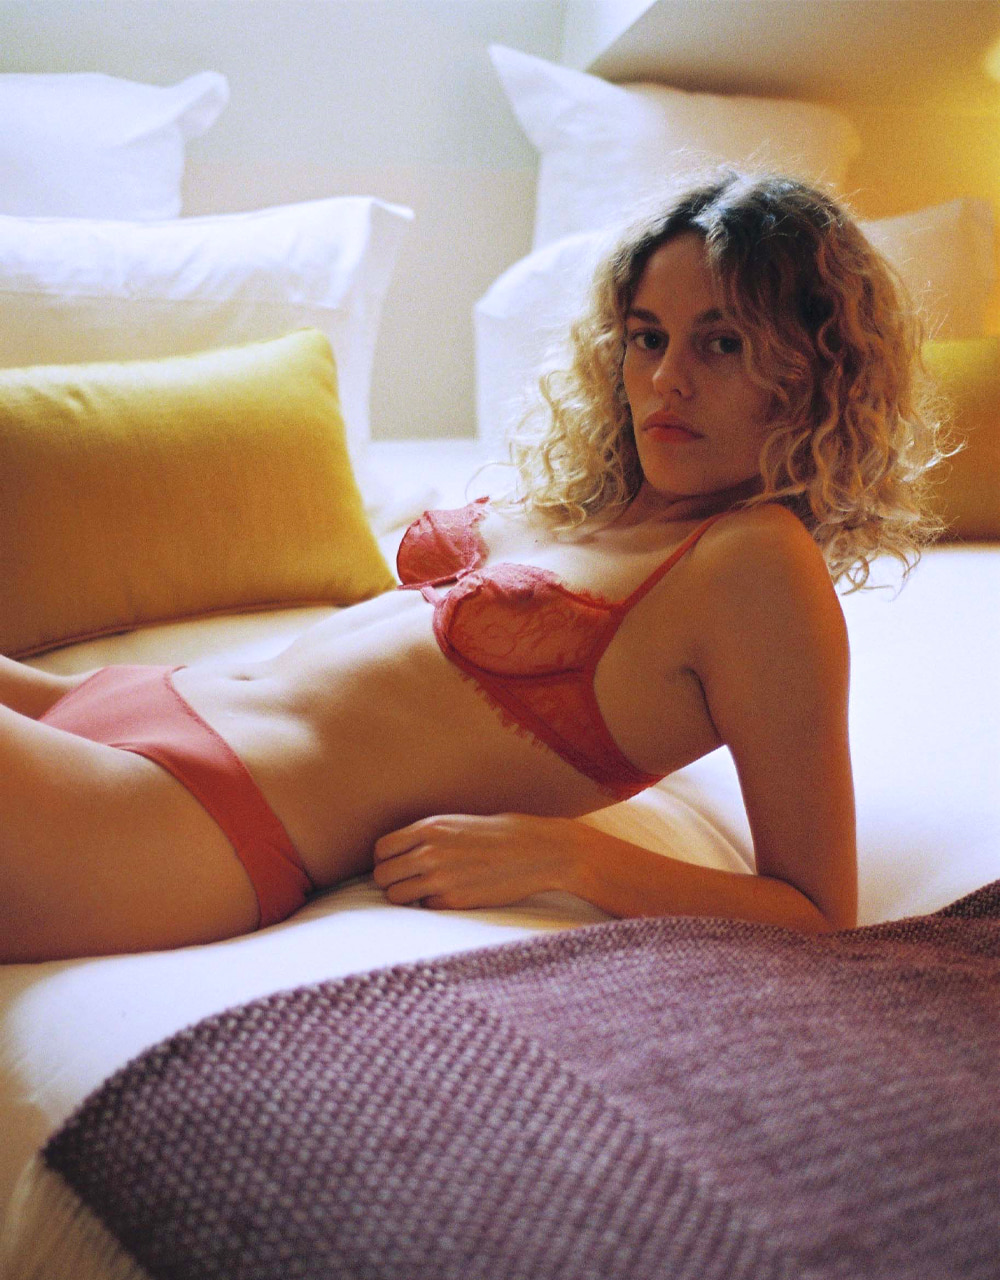 lingerie bra with underwires Charlie Tan 39 € Girls In Paris photo 1